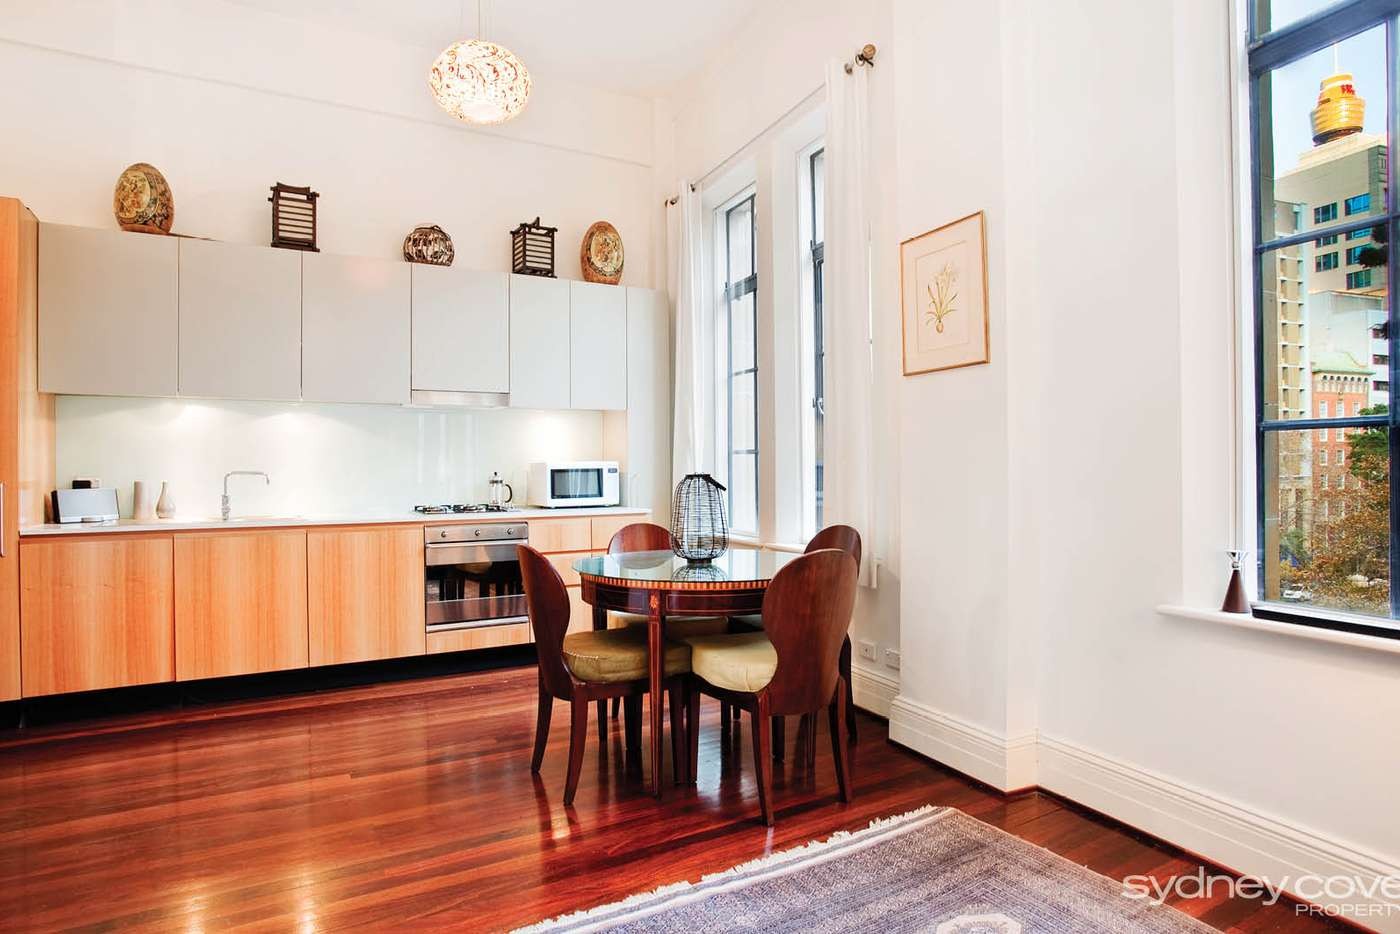 Main view of Homely apartment listing, 2 York St, Sydney NSW 2000